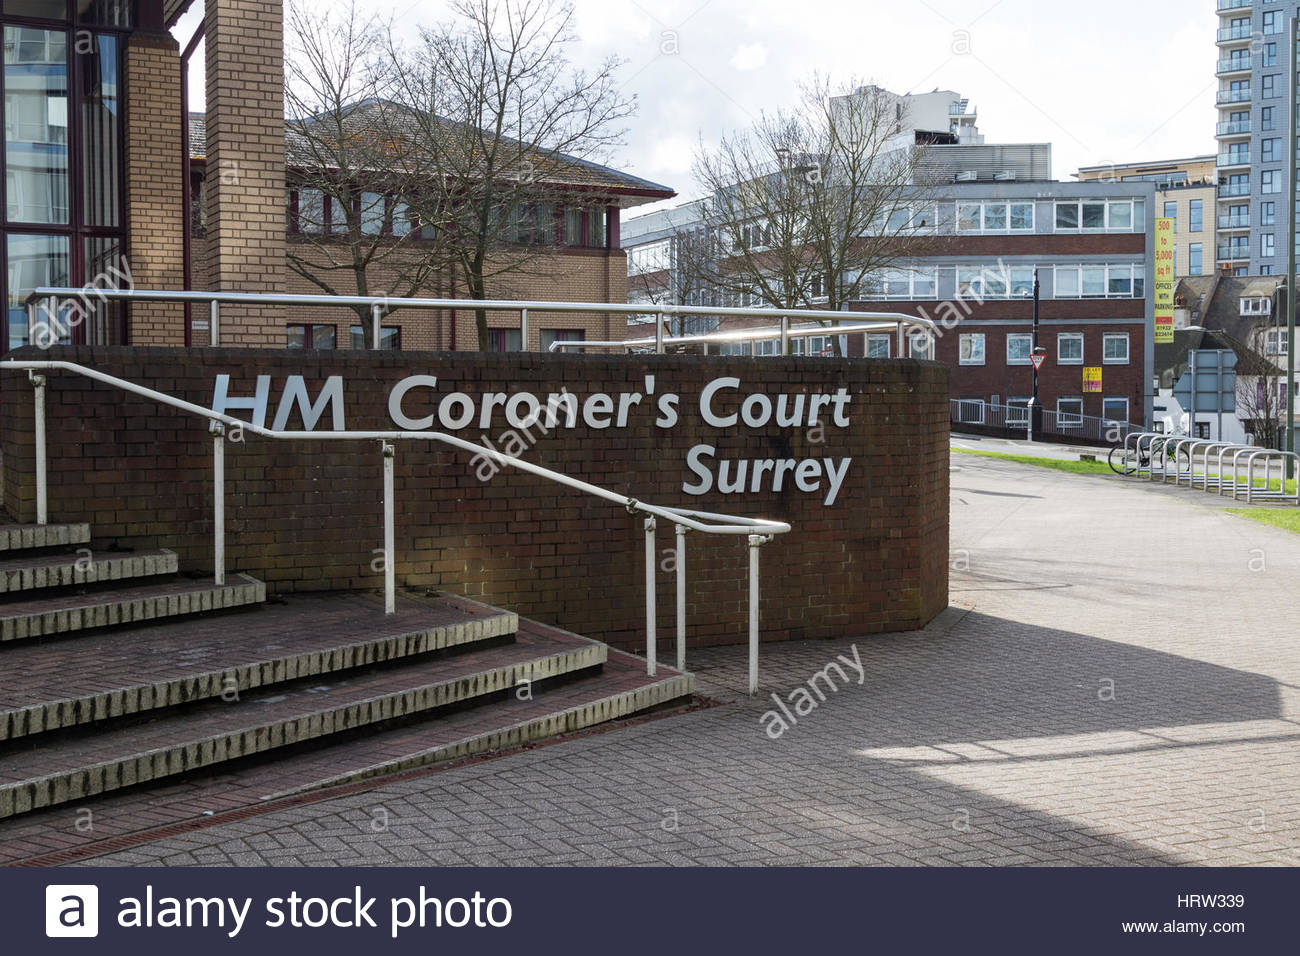 Woking Coroner's Court is scheduled to begin an Inquest into the death of Alexander Perepilichnyy the Russian - Stock Image